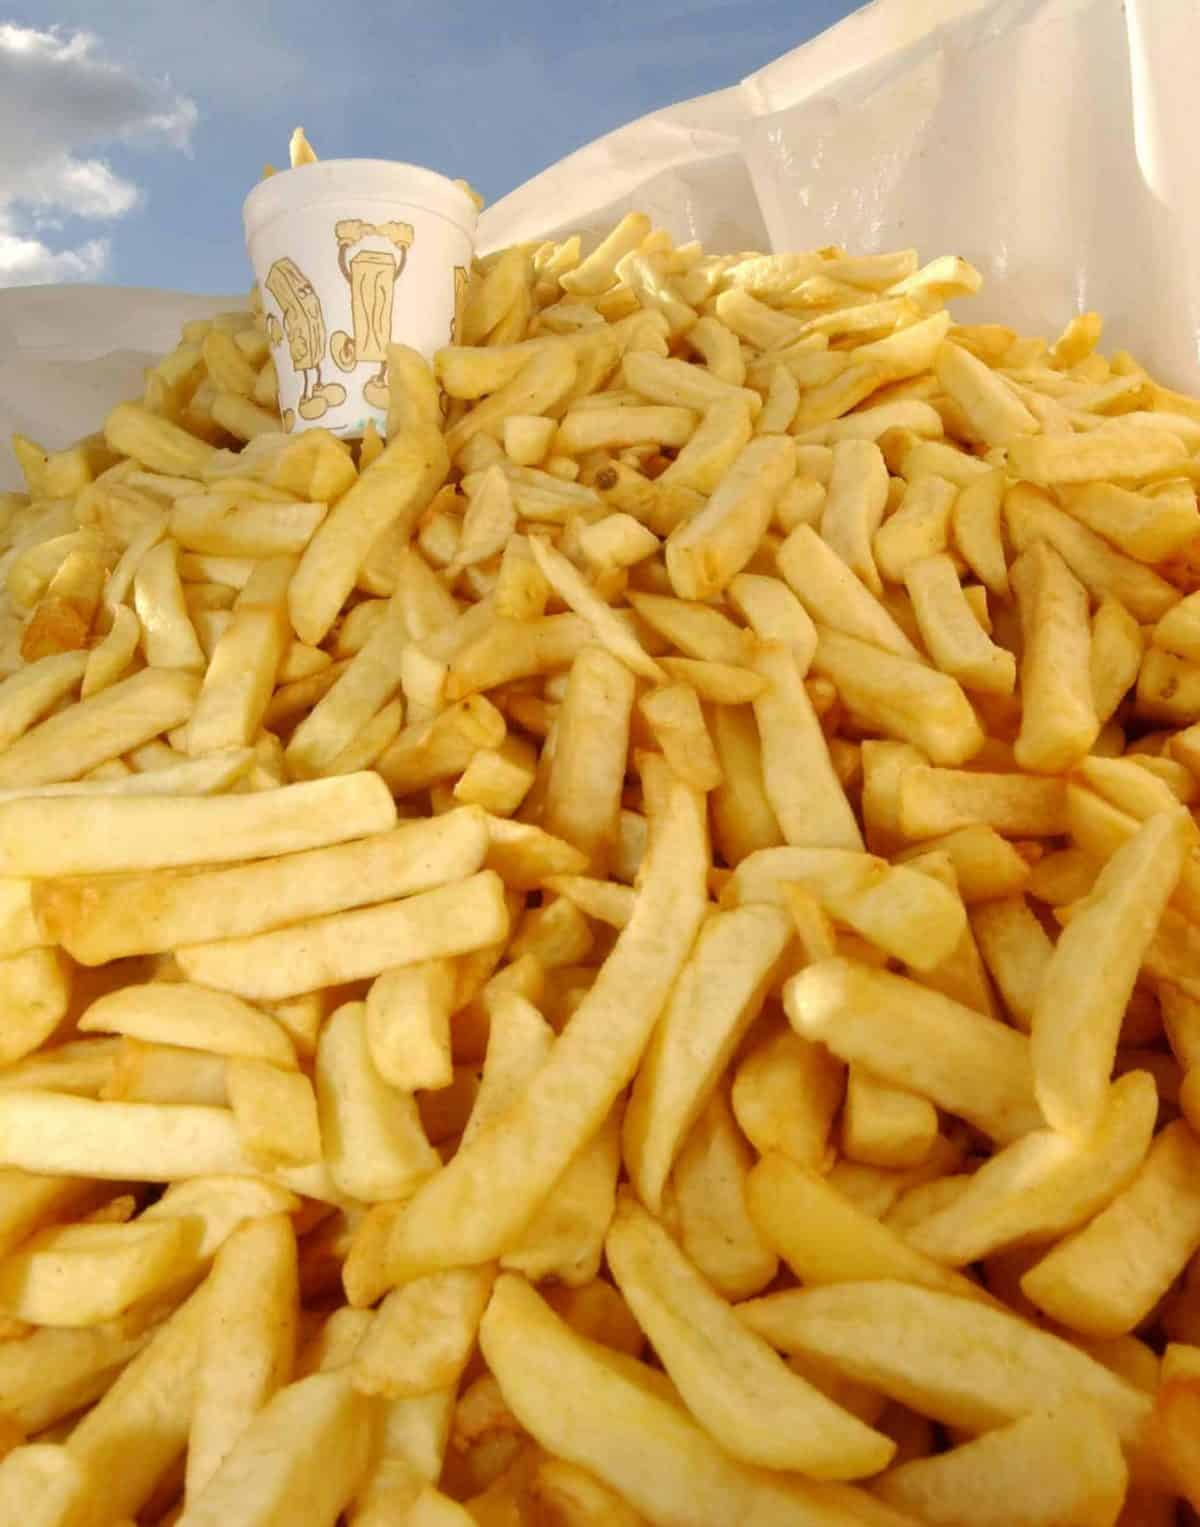 1500 portions of chips form the World's largest bag of chips at Hereford Racecourse in Hereford as part of National Chip Week.